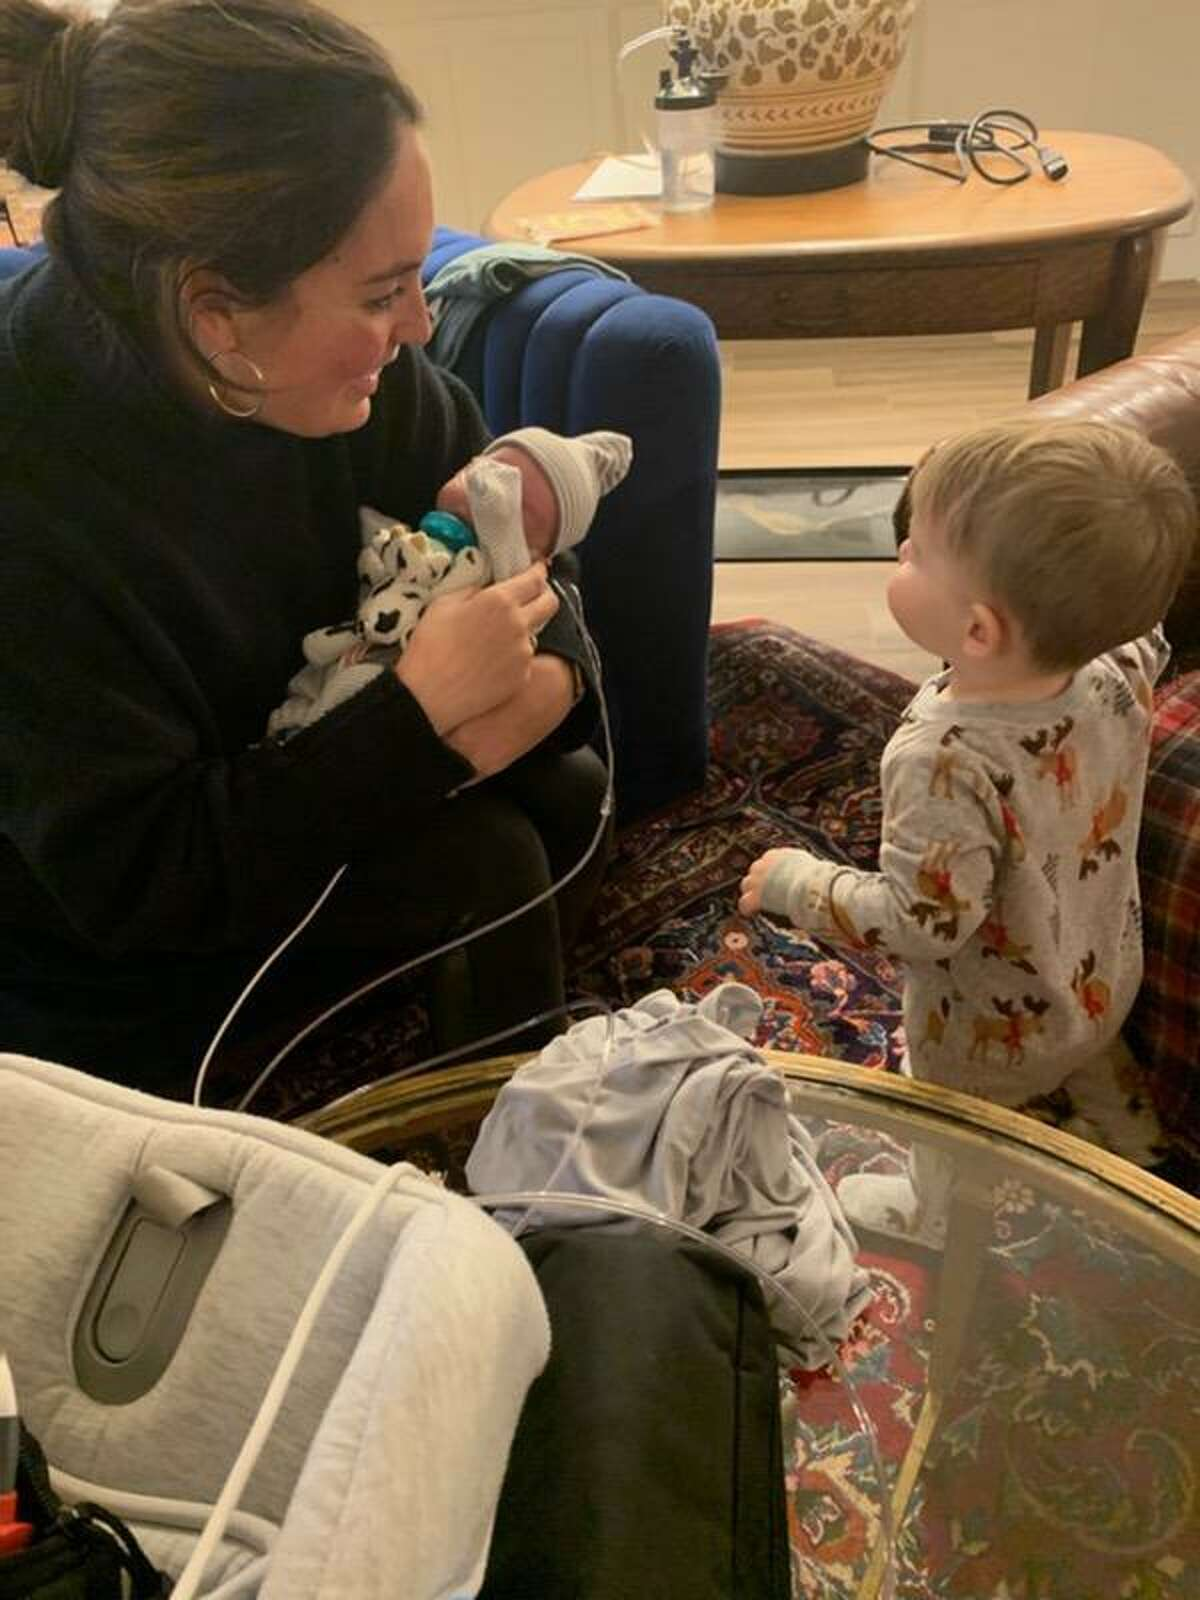 Levi and Ashley Barnard brought Cash home Feb. 12 after the premature infant spent 70 days in the hospital. Their house lost power early Monday morning, setting off a frantic scramble to find a way to keep his oxygen machine powered.